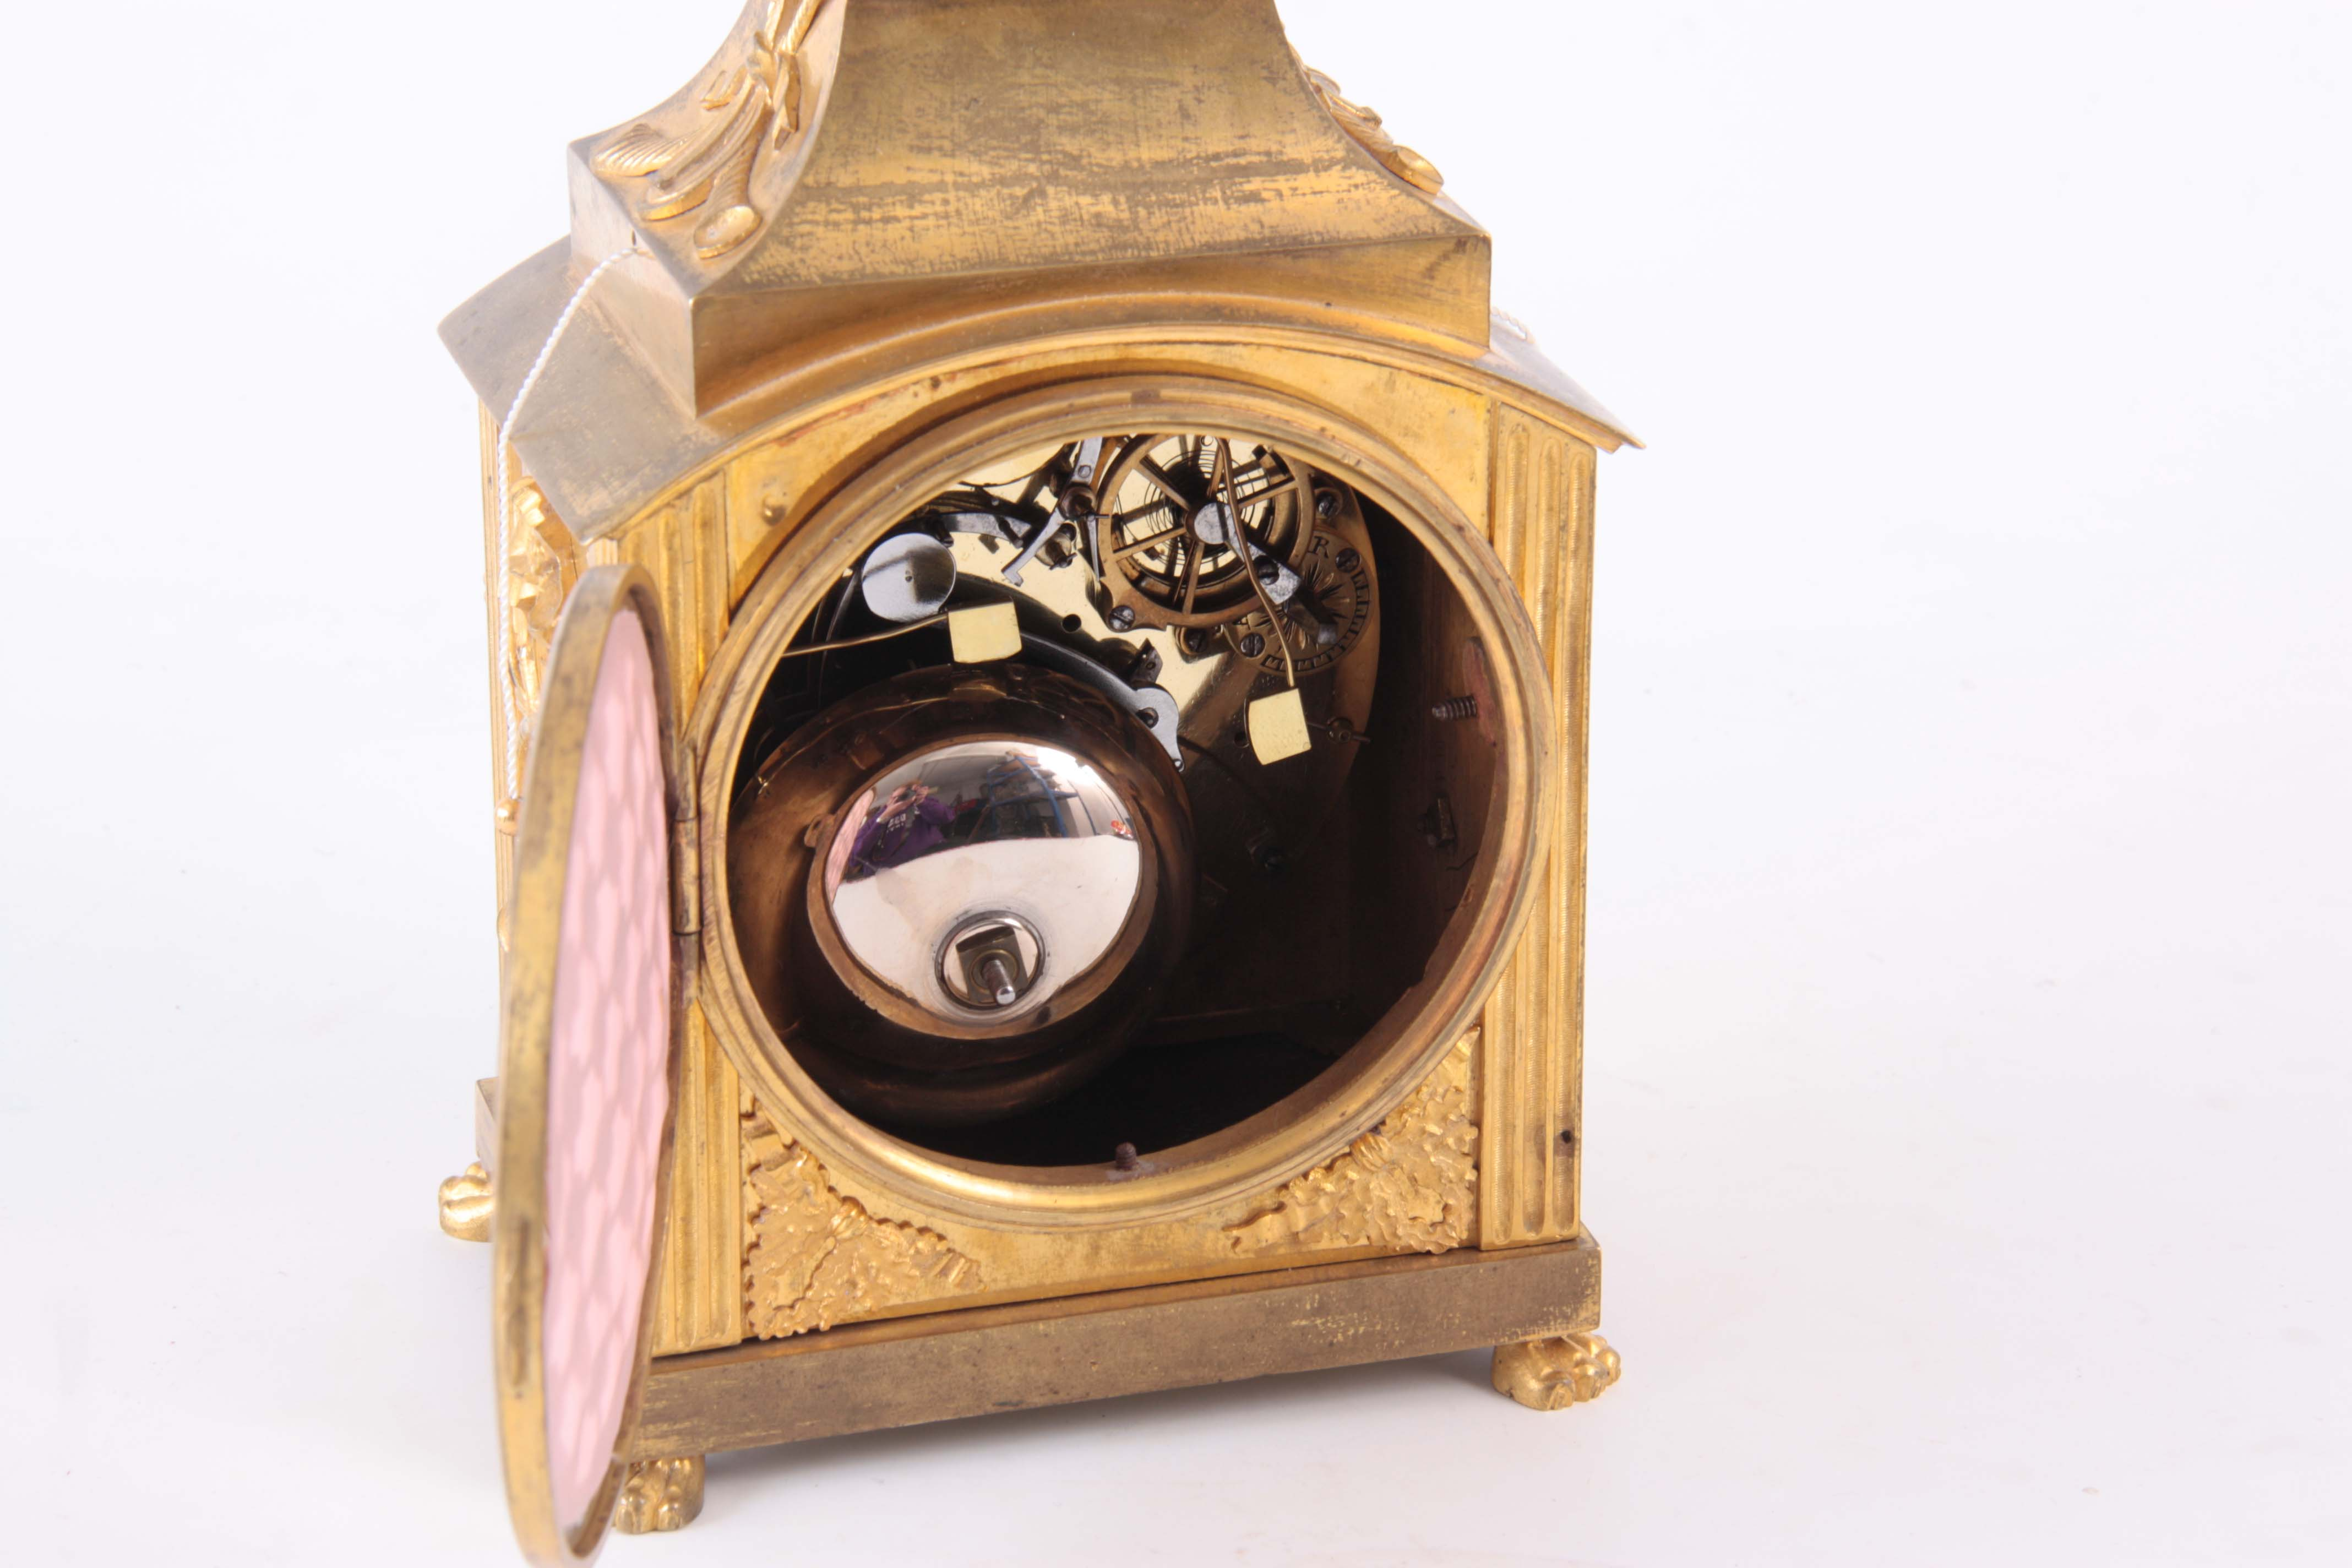 AN 18th CENTURY SWISS PENDULE D'OFFICIERS CARRIAGE CLOCK the ormolu case with applied mounts - Image 4 of 4